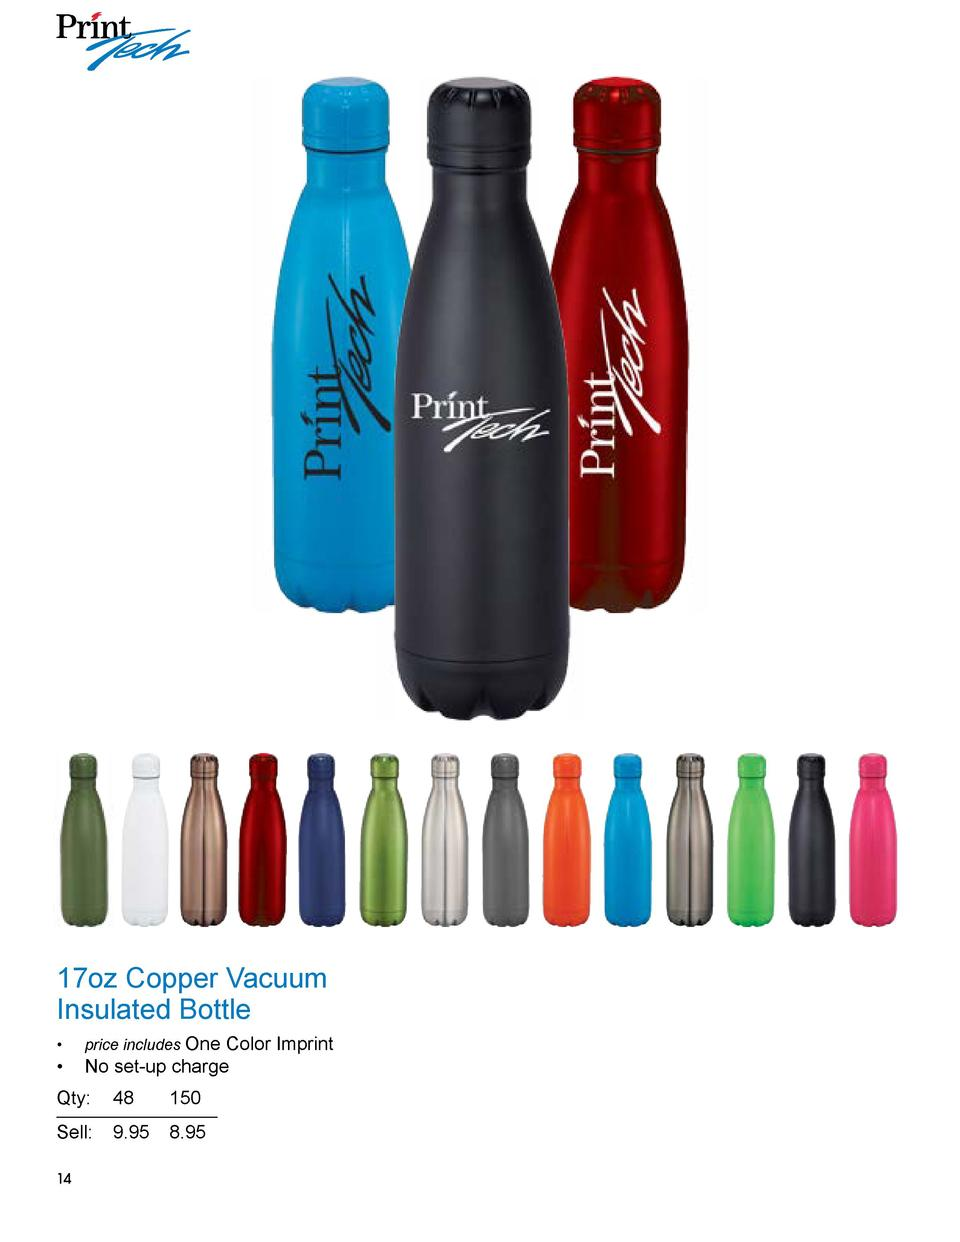 17oz Copper Vacuum Insulated Bottle Color Imprint      No set-up charge       price includes One  Qty   48 150 Sell    9.9...